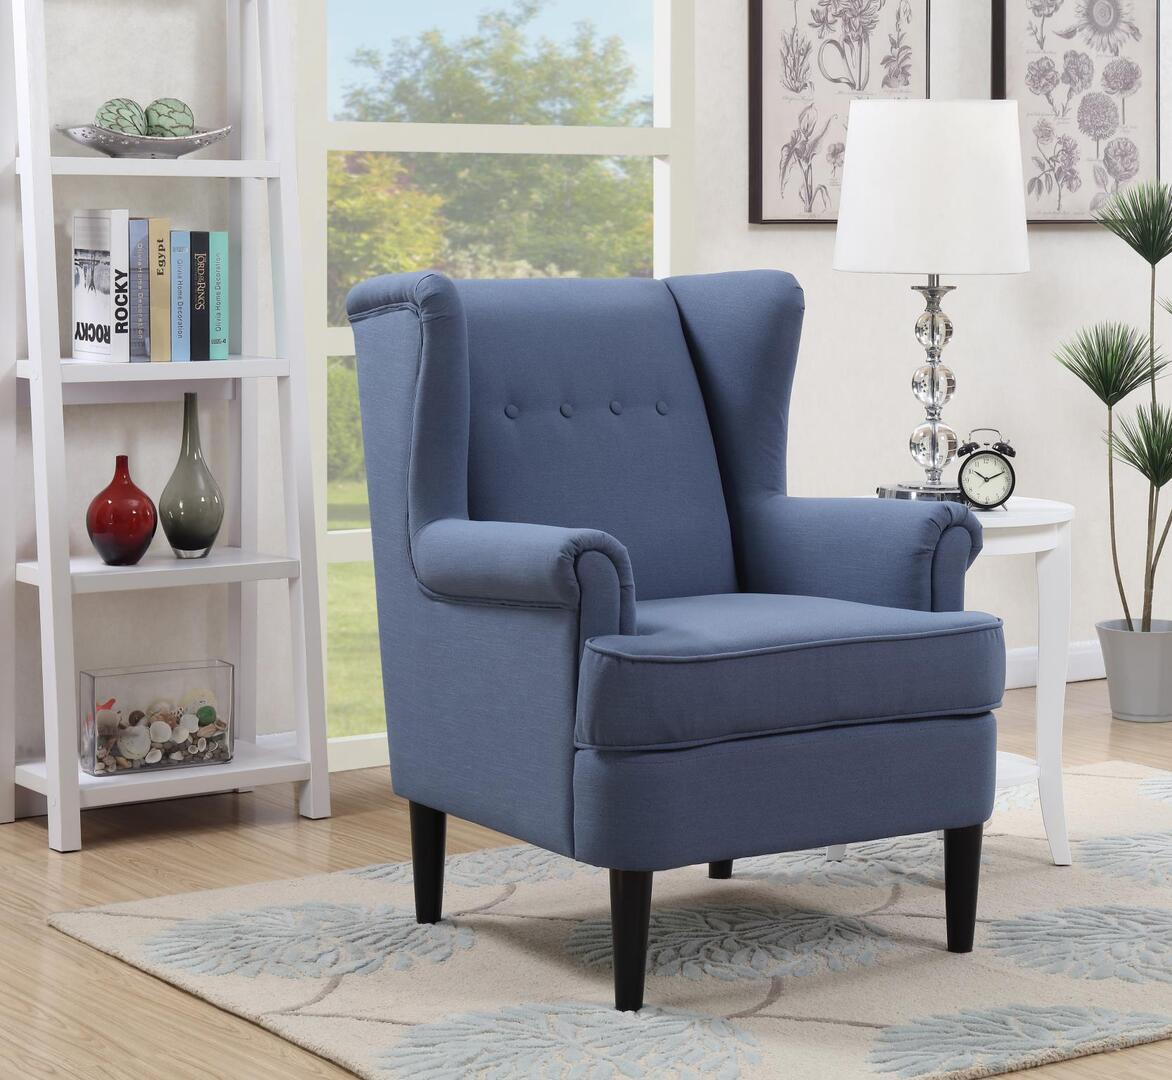 Stupendous Myco Furniture 8754 Caraccident5 Cool Chair Designs And Ideas Caraccident5Info